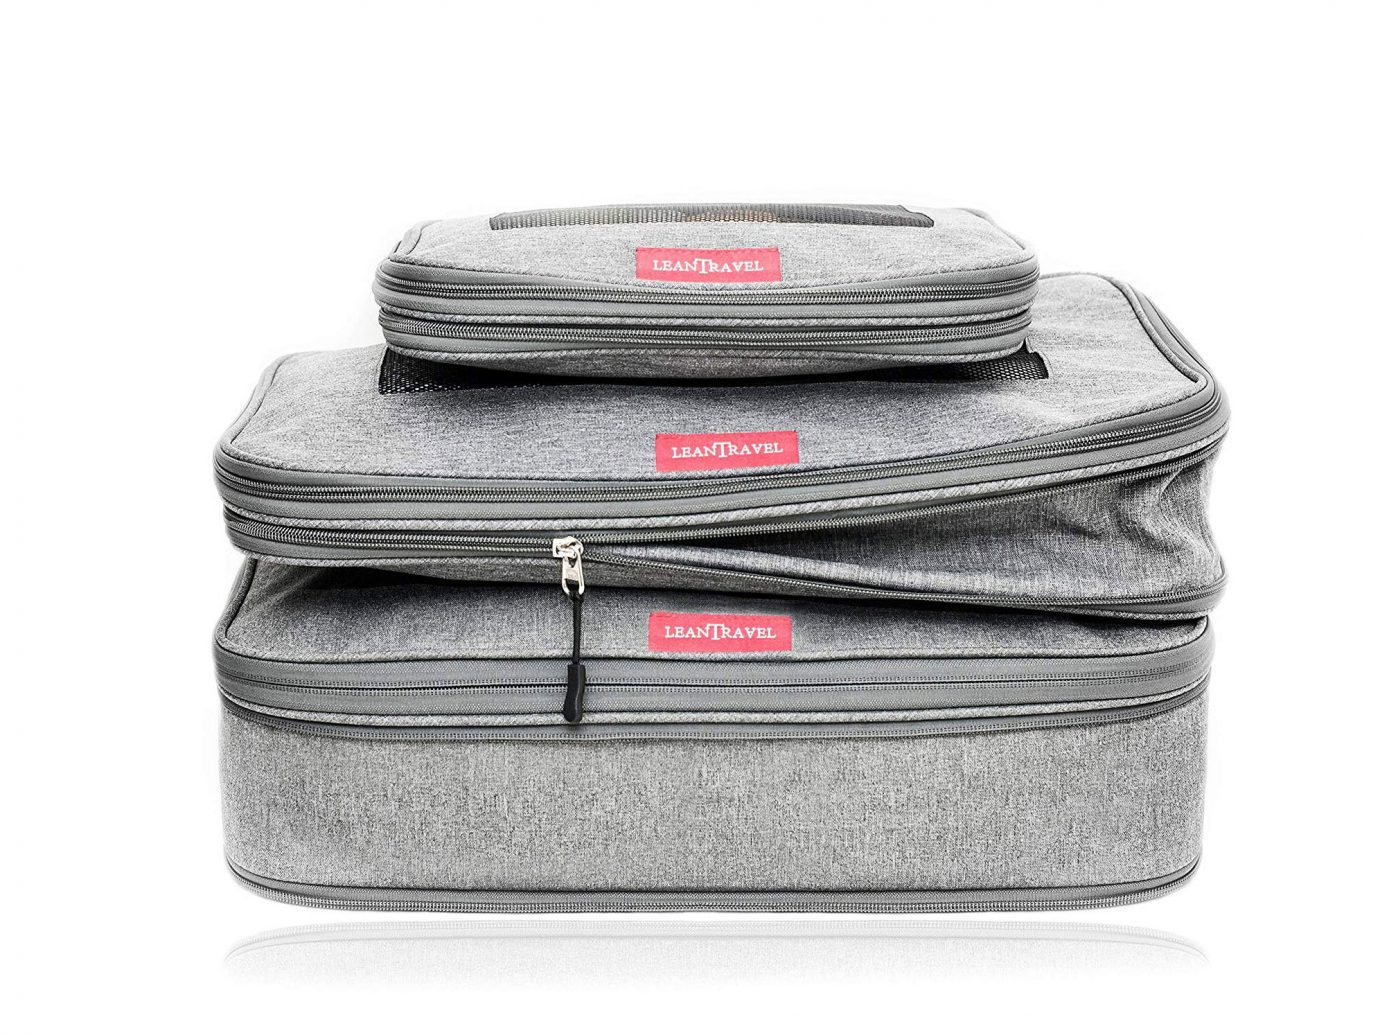 LeanTravel Compression Packing Cubes with Double Zipper (Set of 3)